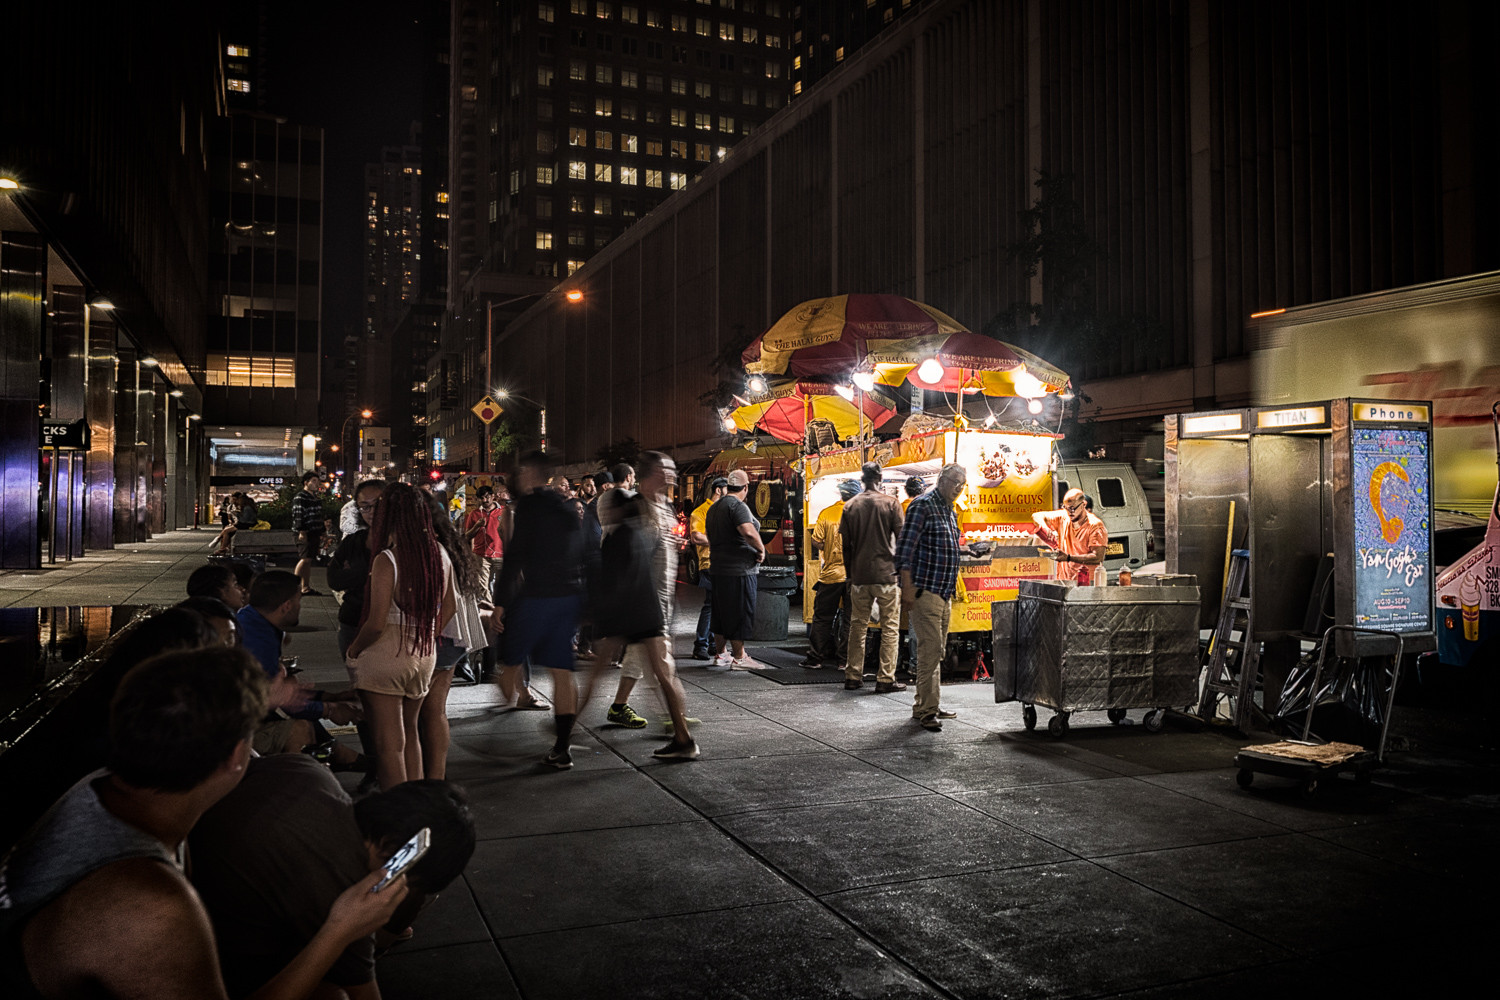 New York Street Food by RJ Photo